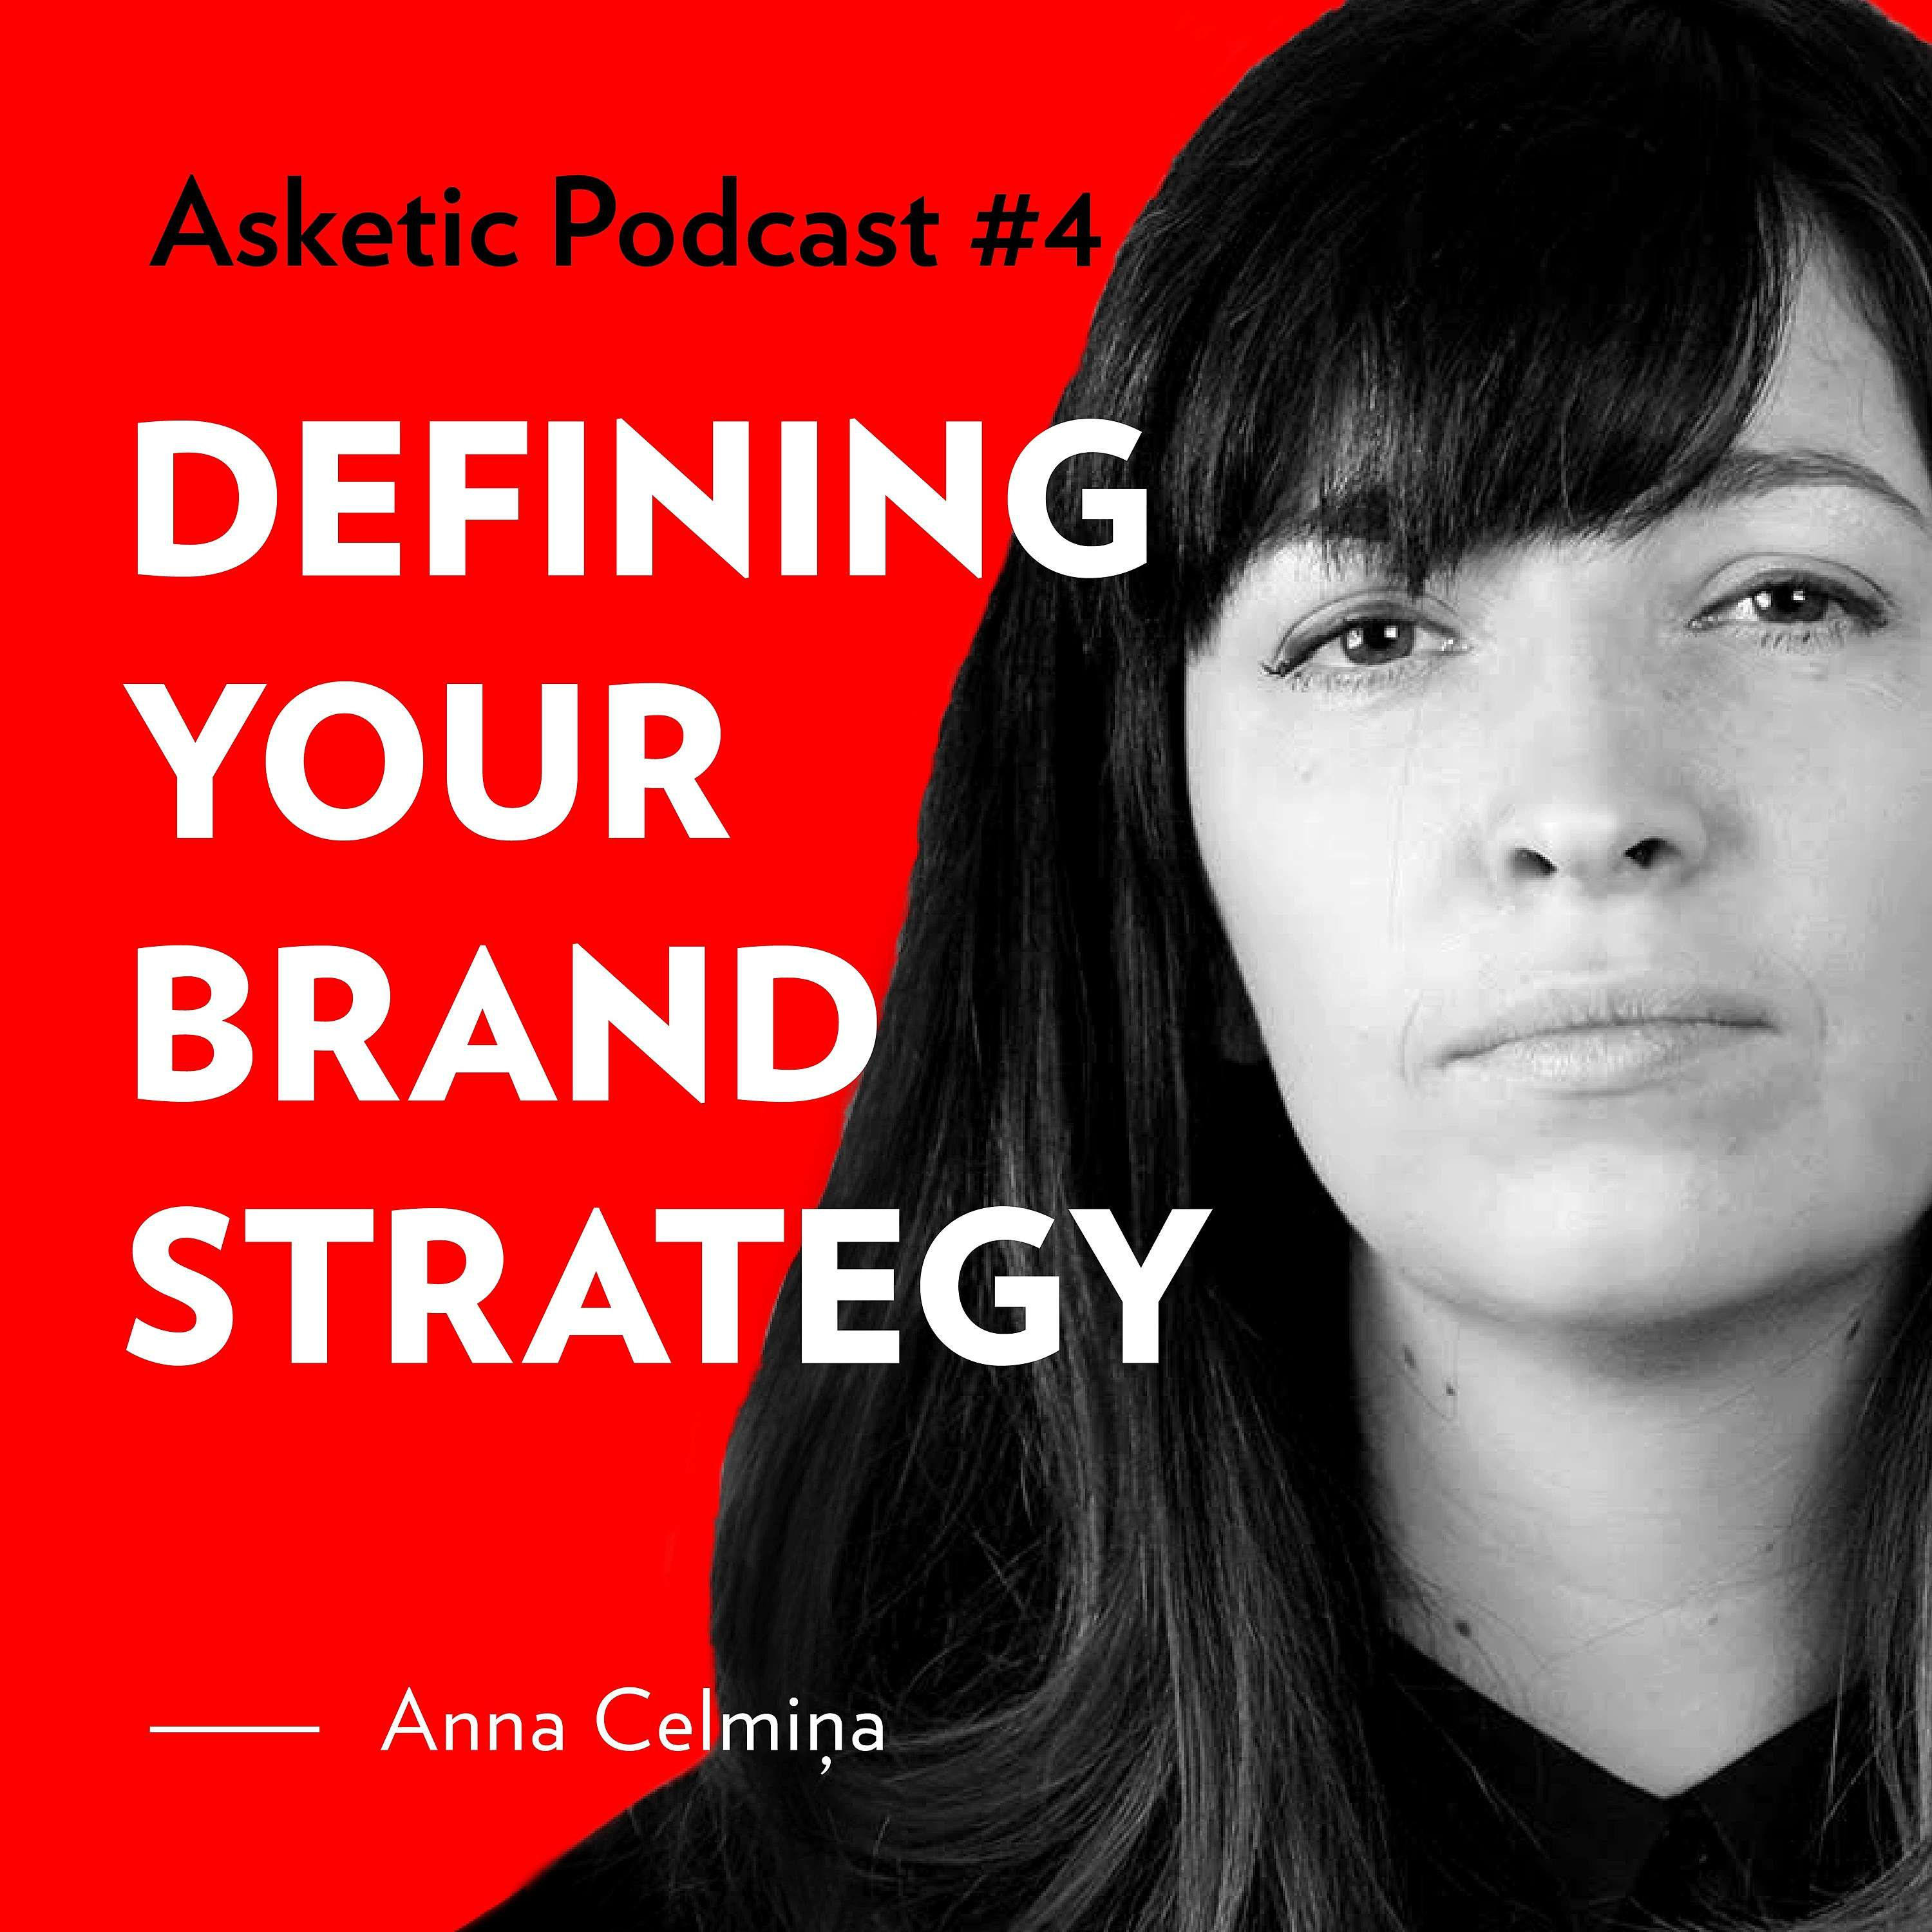 Asketic Podcast #4 Anna Celmiņa — Defining Your Brand Strategy